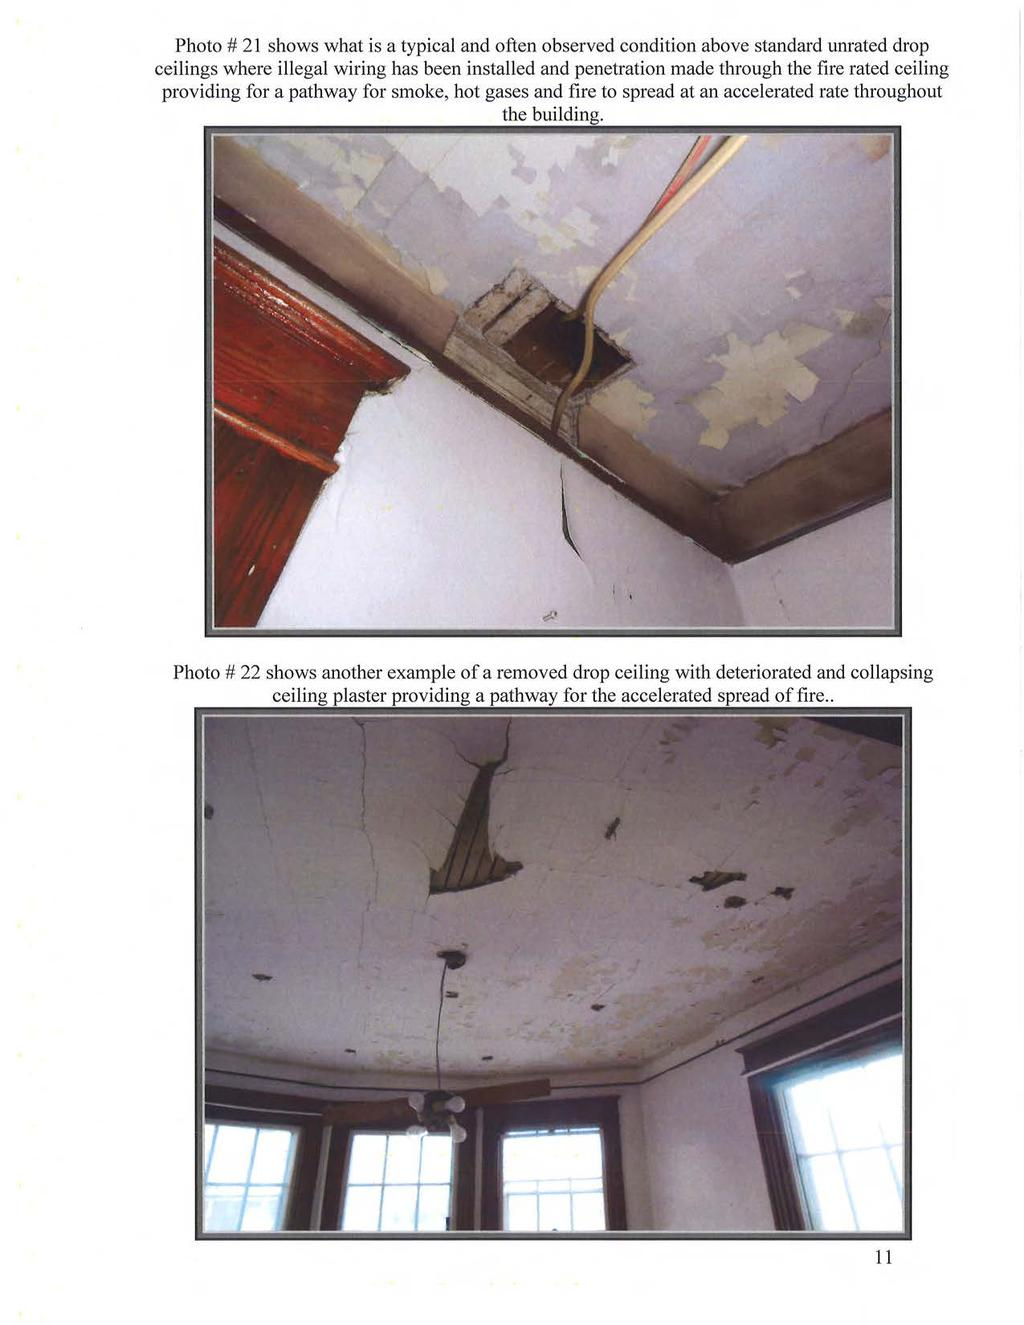 Photo # 21 shows what is a typical and often observed condition above standard unrated drop ceilings where illegal wiring has been installed and penetration made through the fire rated ceiling